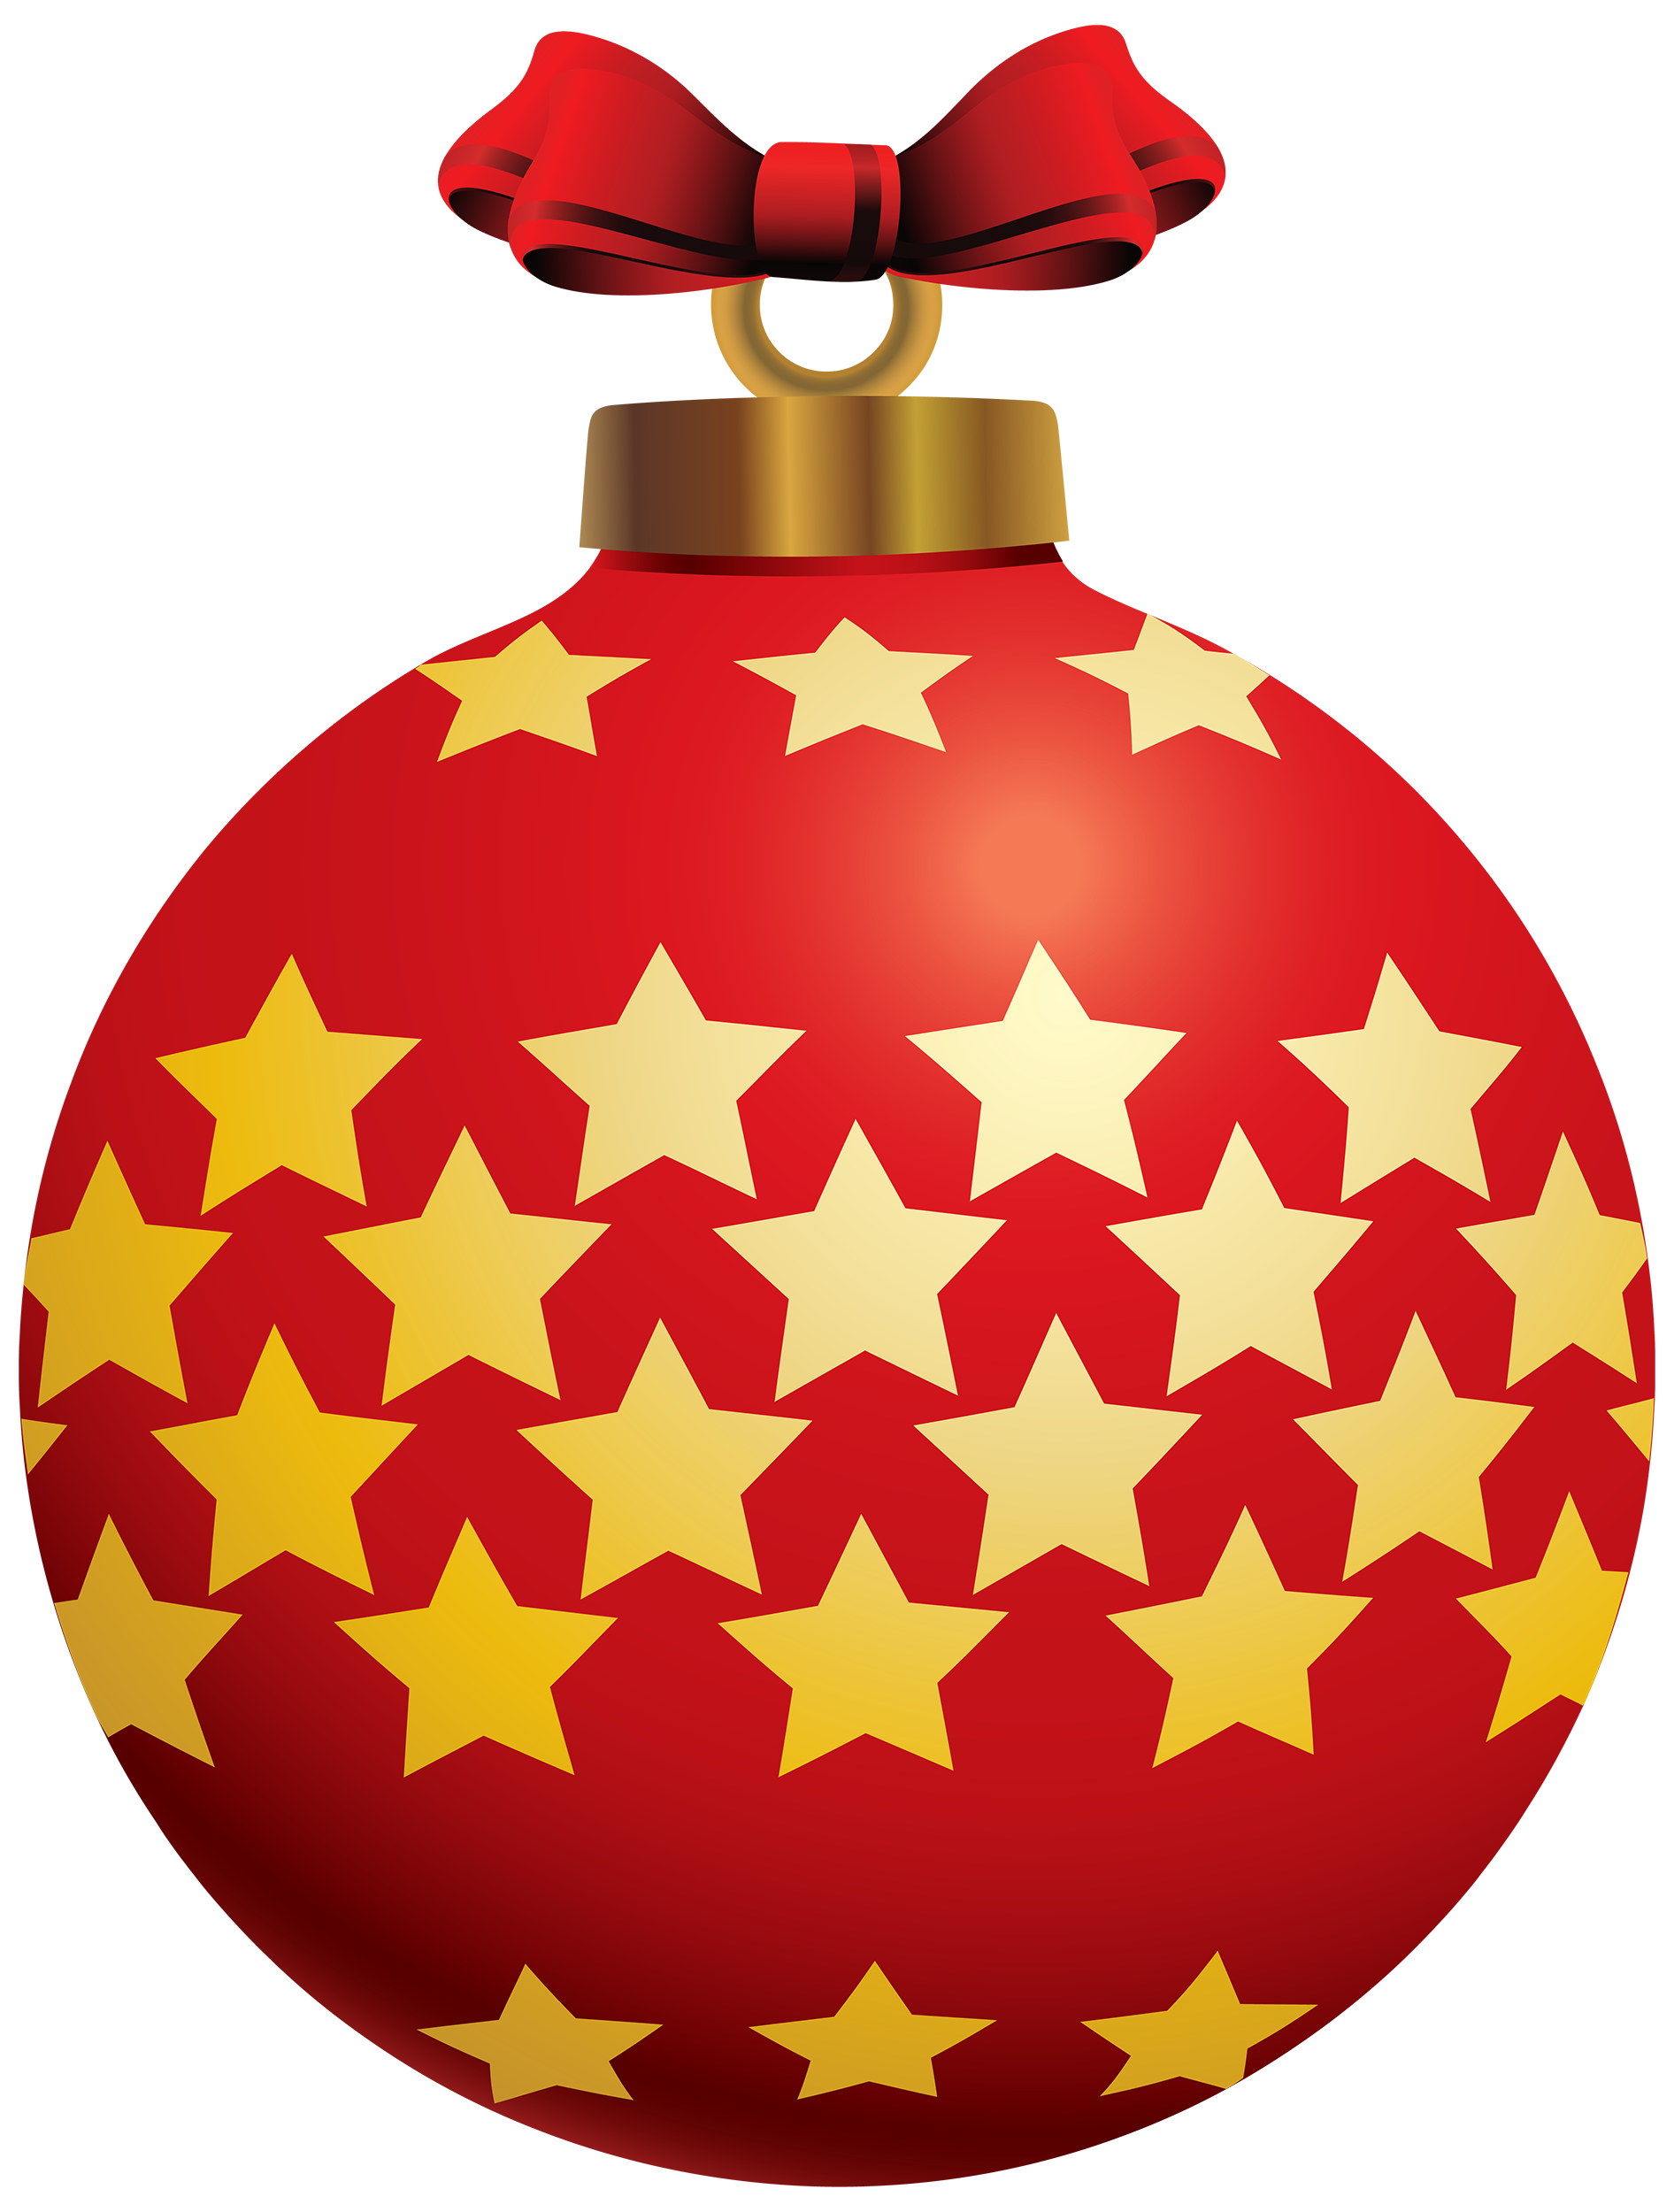 Christmas ball ornament clipart clipart freeuse stock Red Christmas Ball with Stars PNG Clipart - Best WEB Clipart clipart freeuse stock